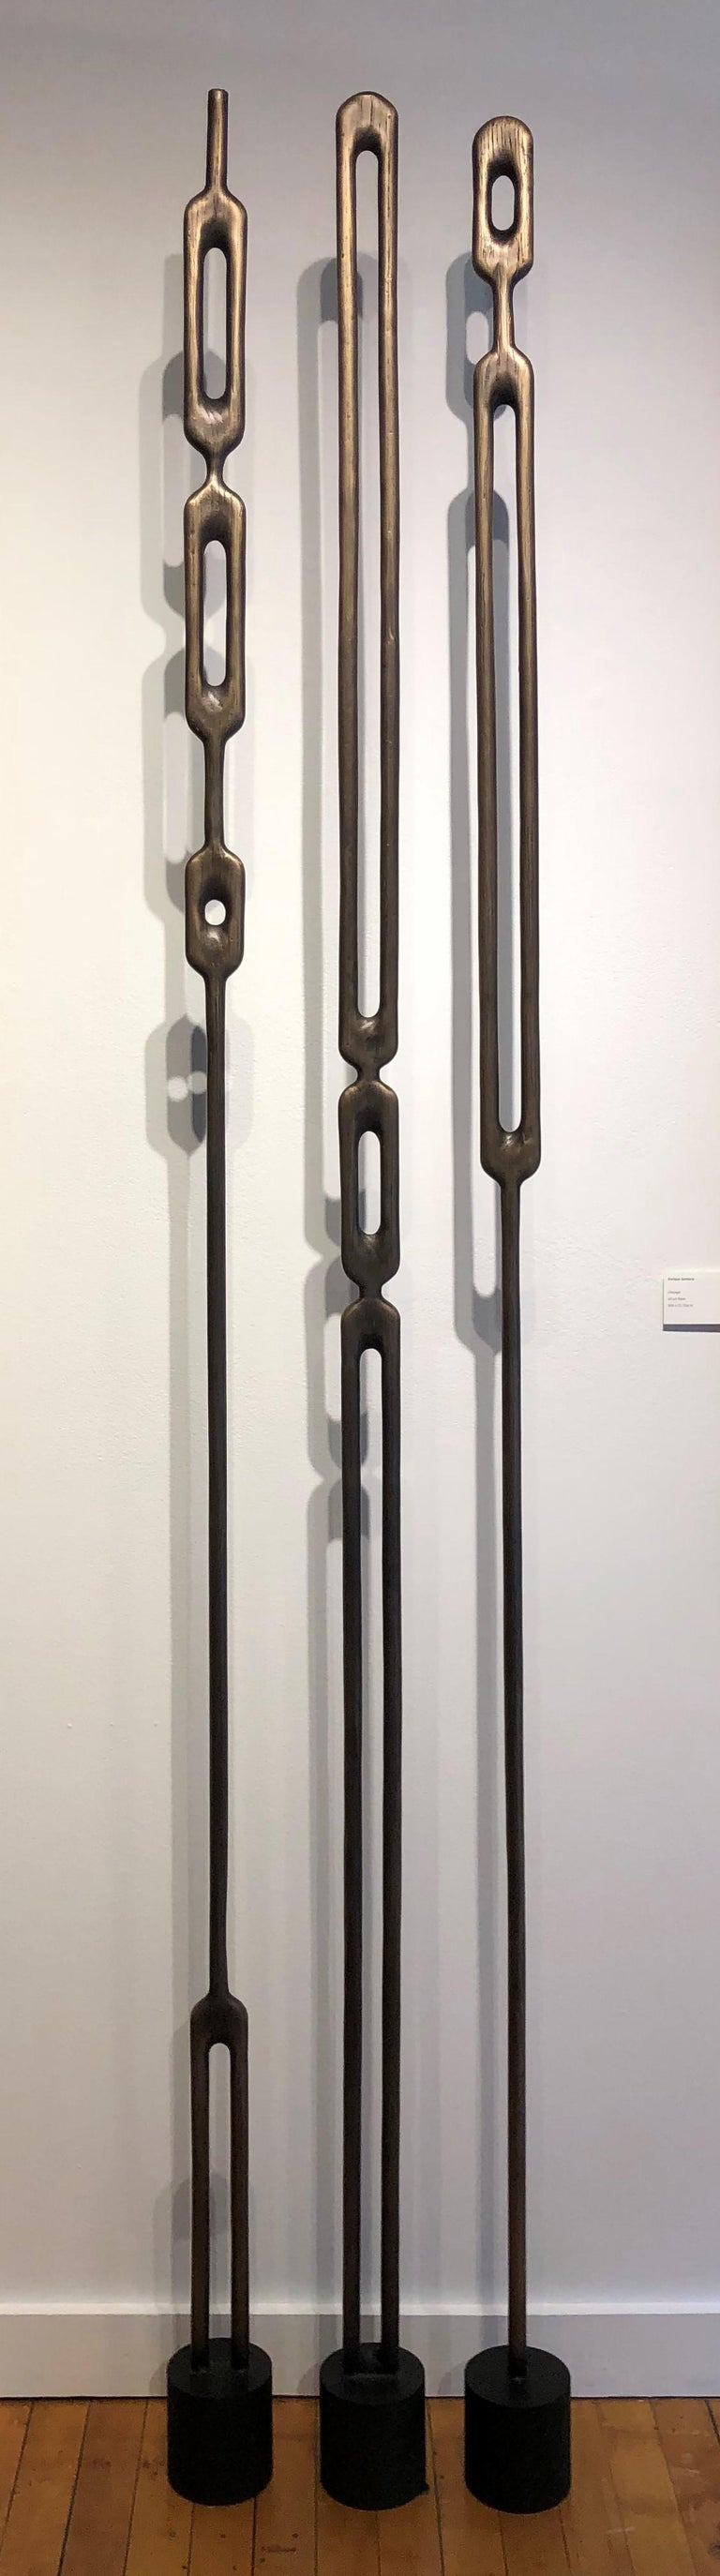 Alone, Bronze Totem Sculpture, Geometric Modern Abstract Forms Cast from Wood For Sale 1